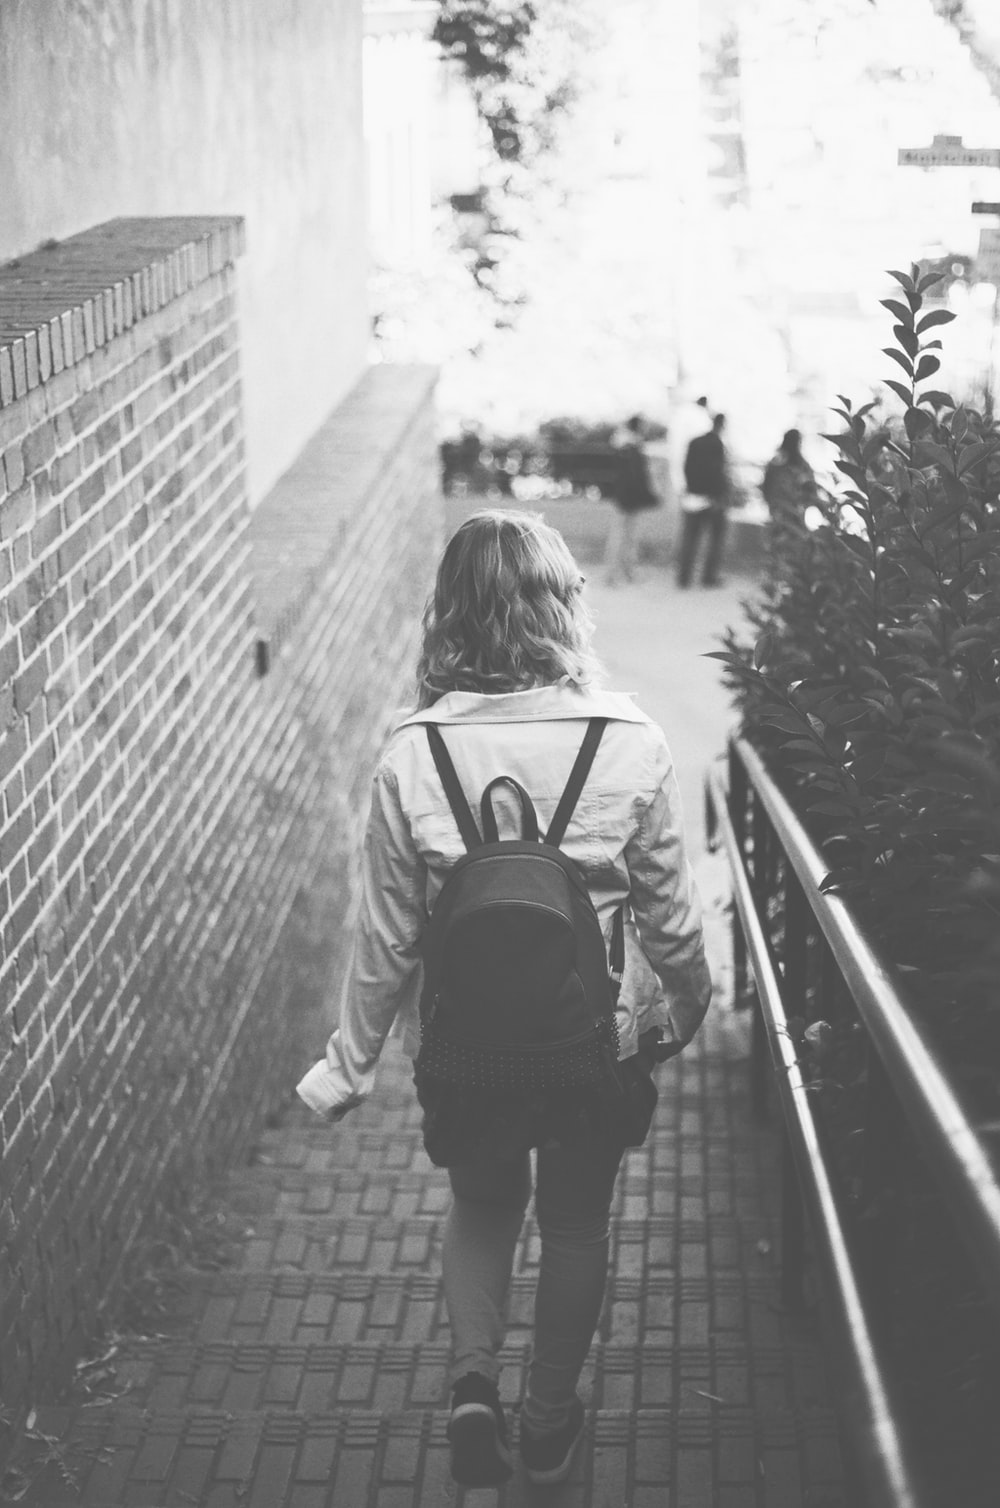 grayscale photography of woman with backpack